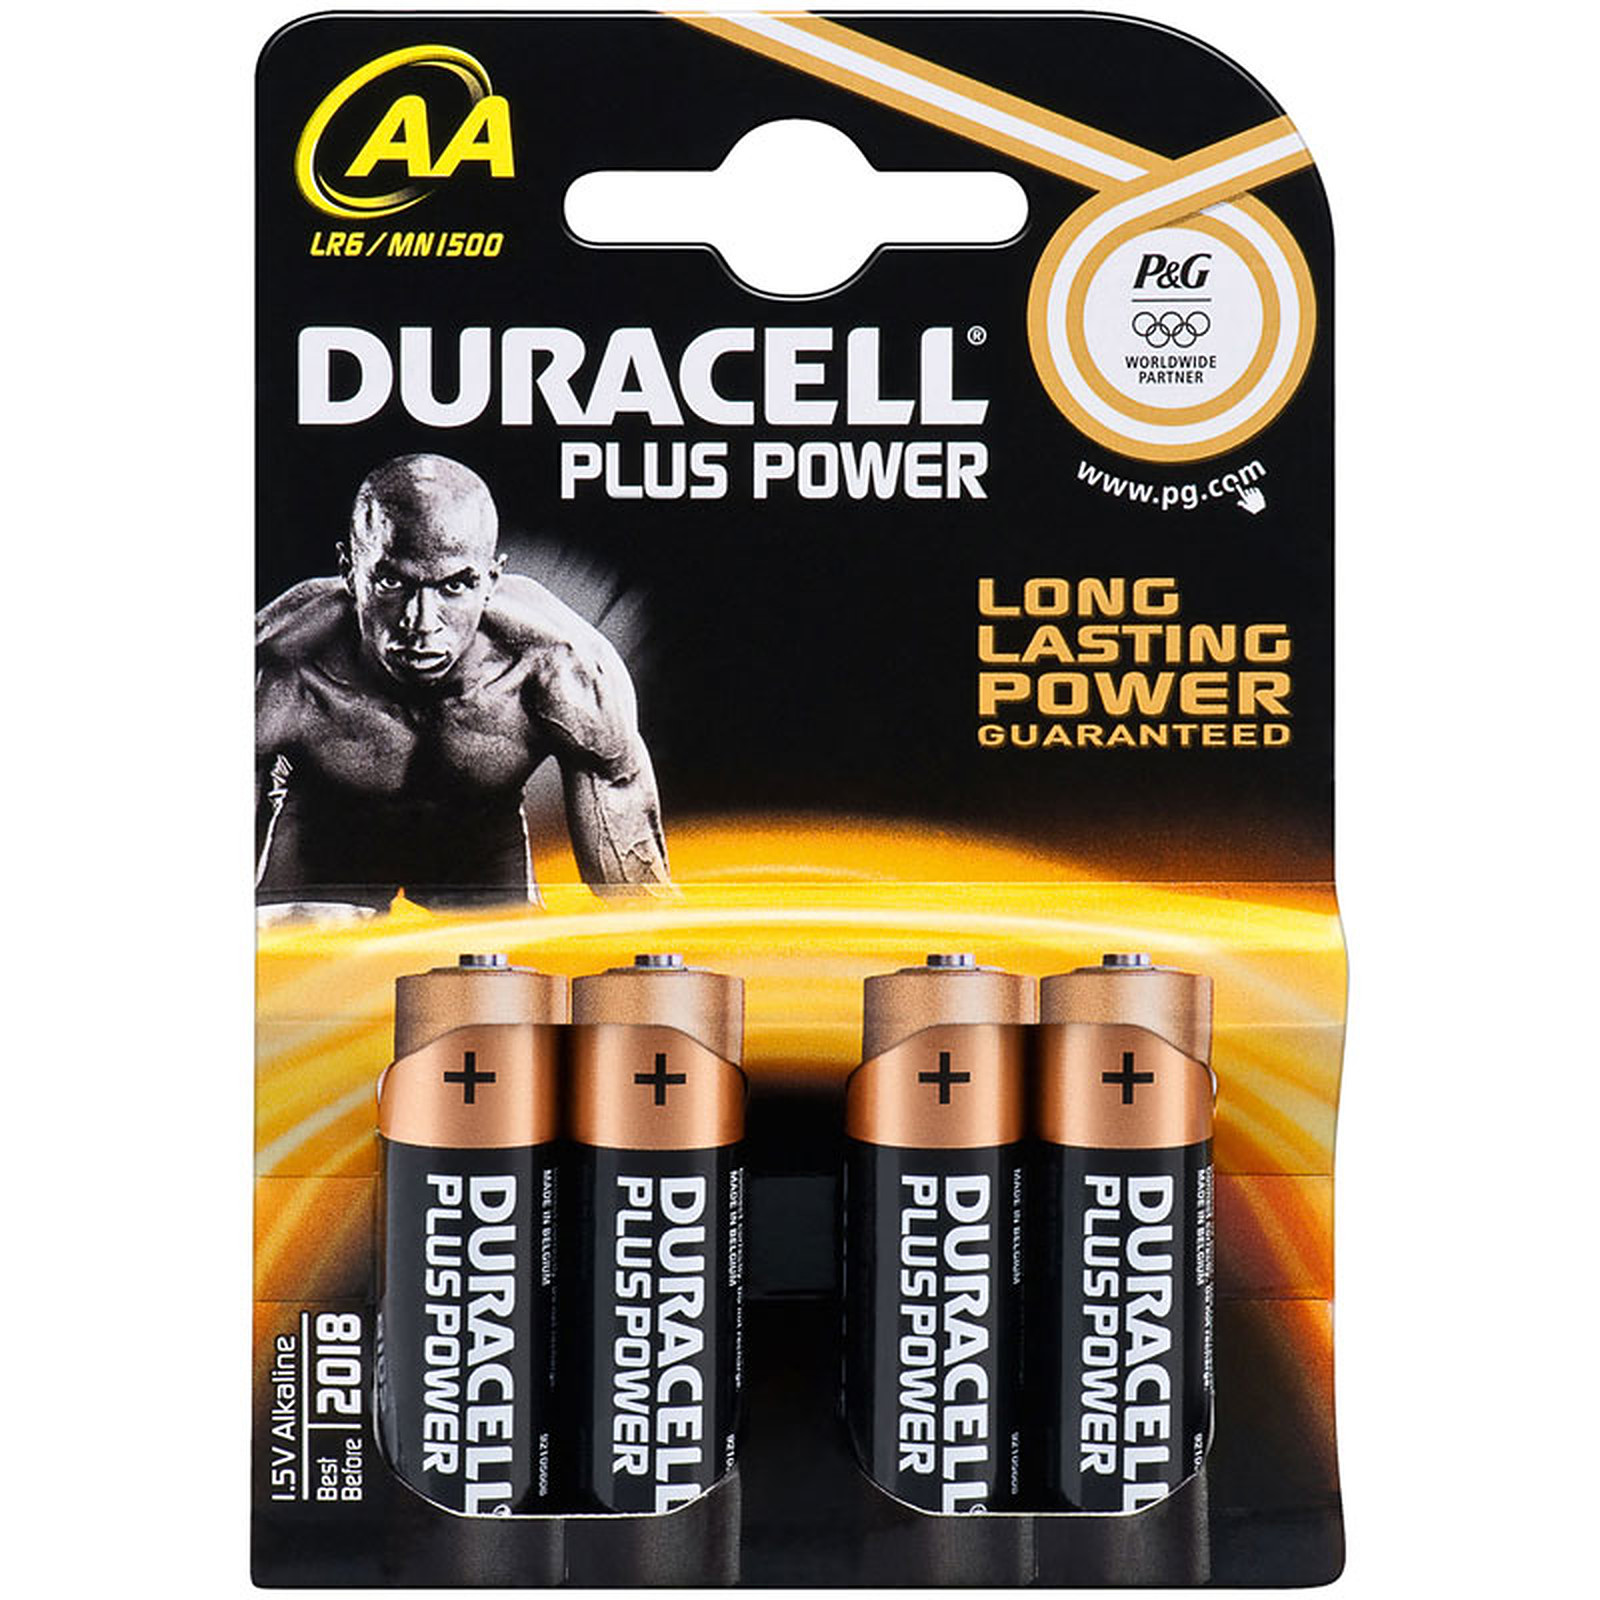 67eea428355 Duracell Plus Power AA (4 unidades) Pack de 4 pilas alcalinas AA (LR6